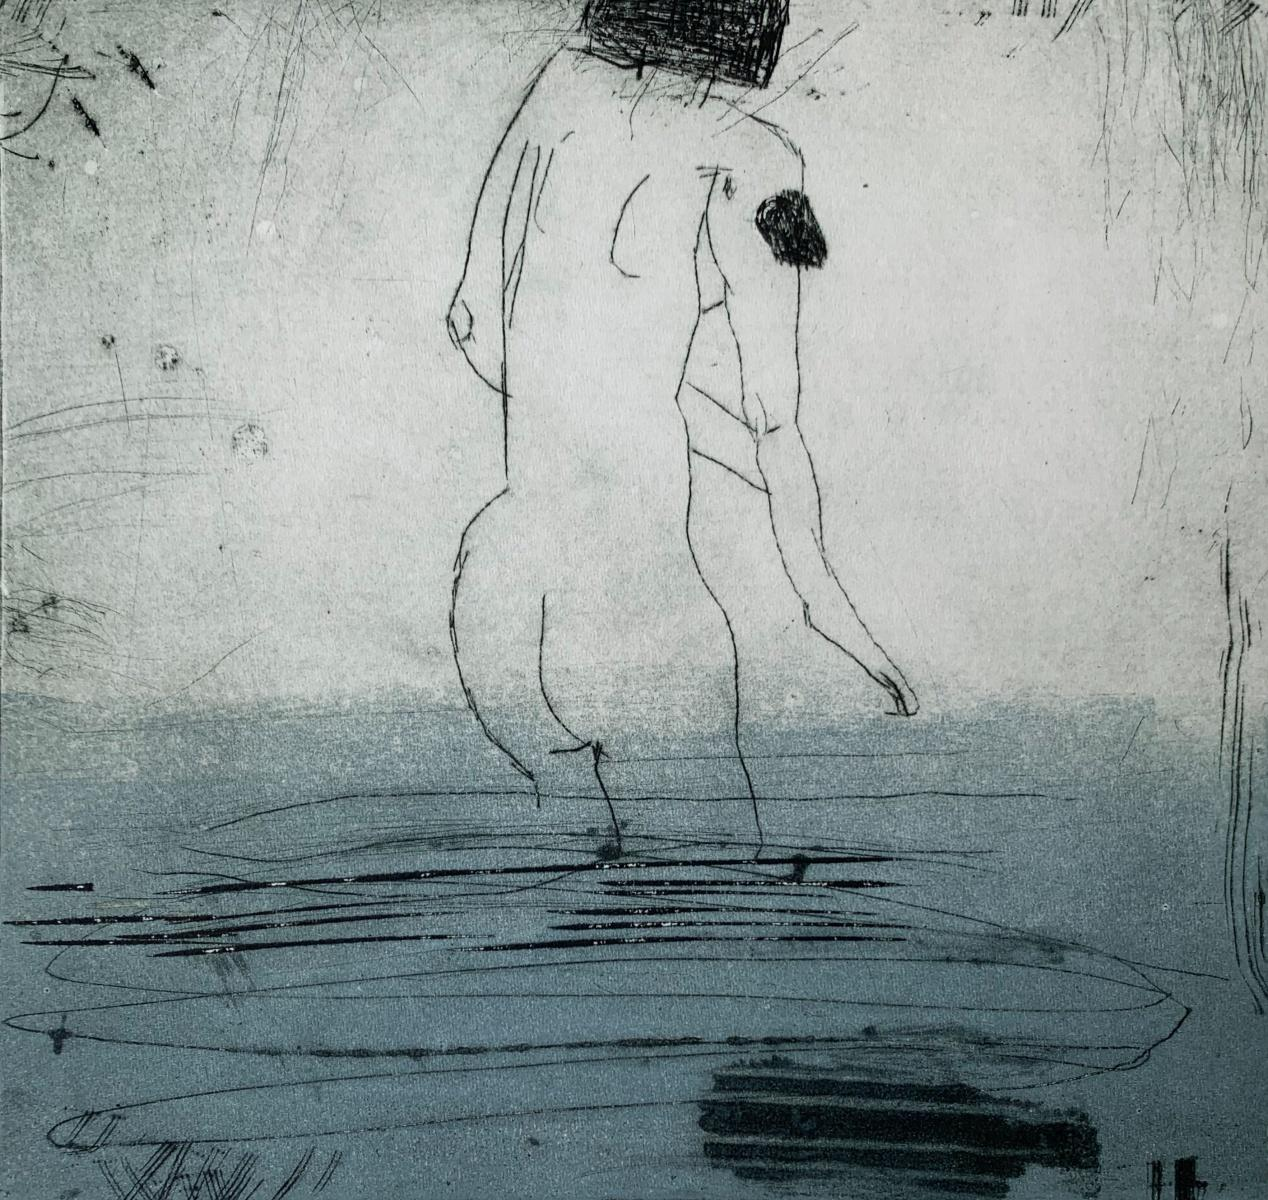 In water 2 - Contemporary Figurative Drypoint Etching Print, Female nude